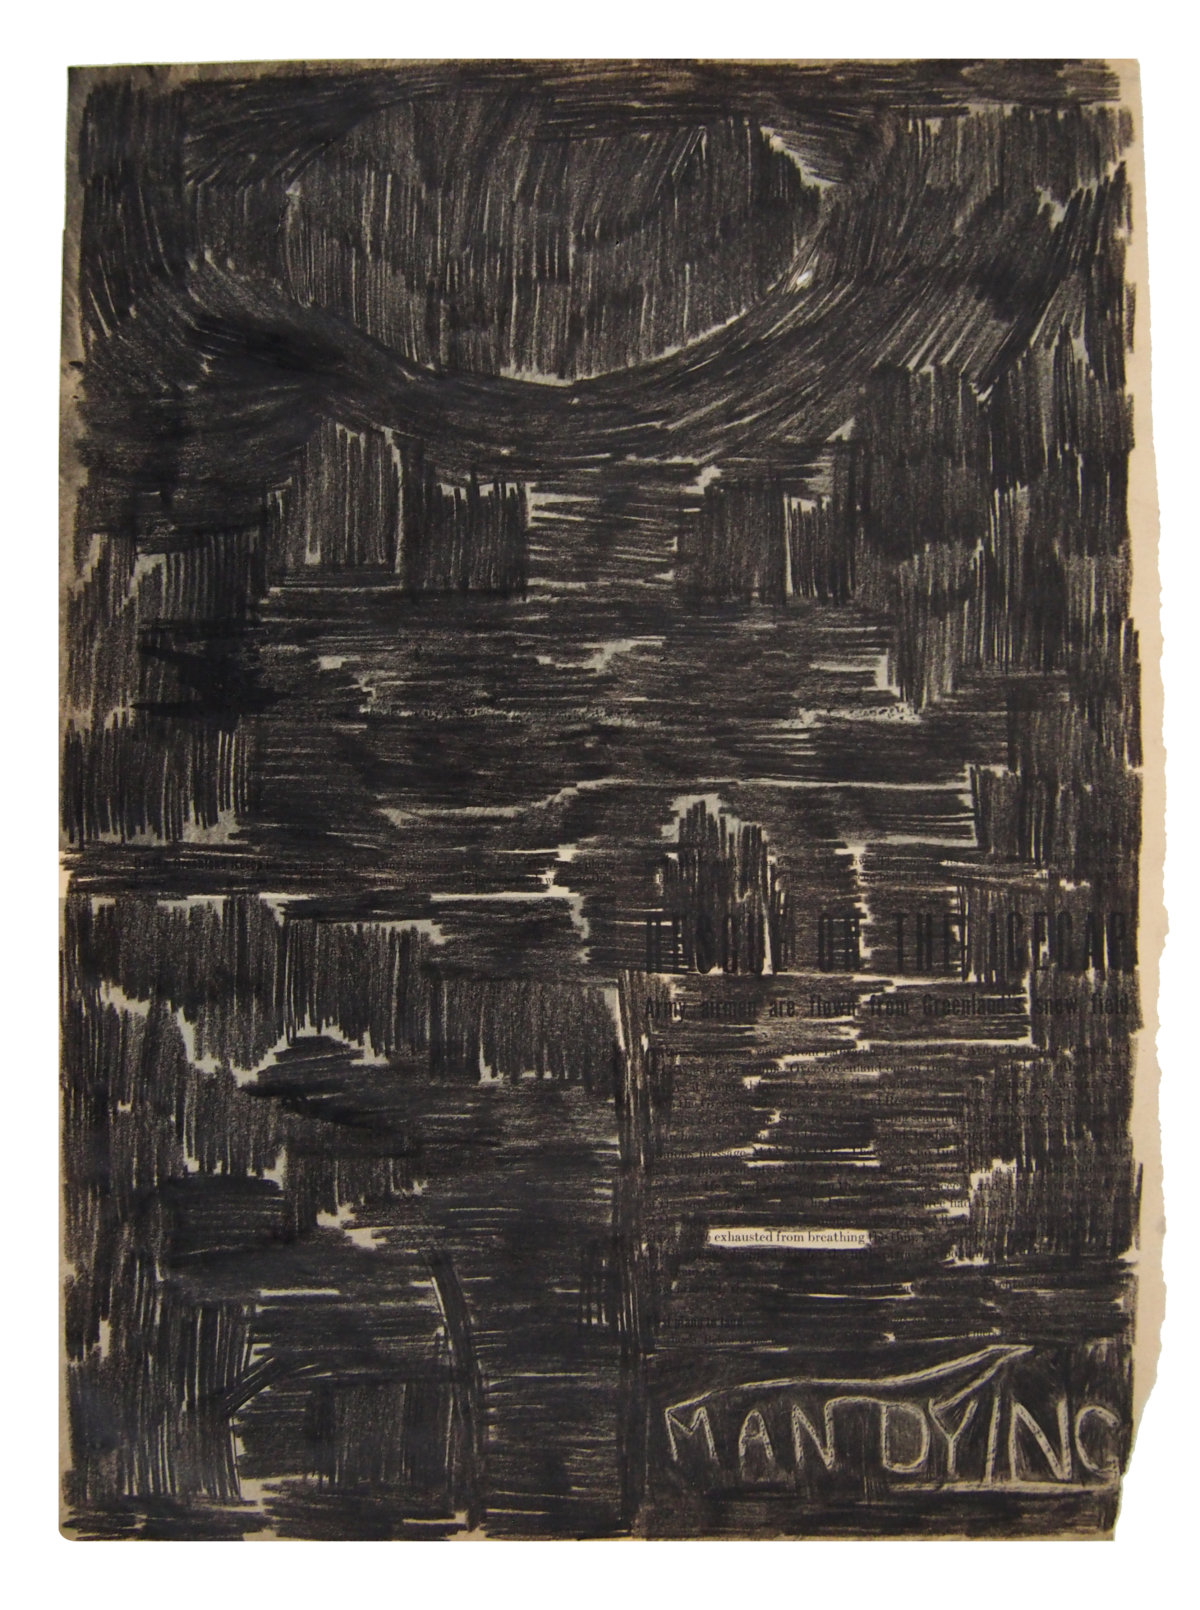 Guy Vording, Black Pages, Man dying, 2017